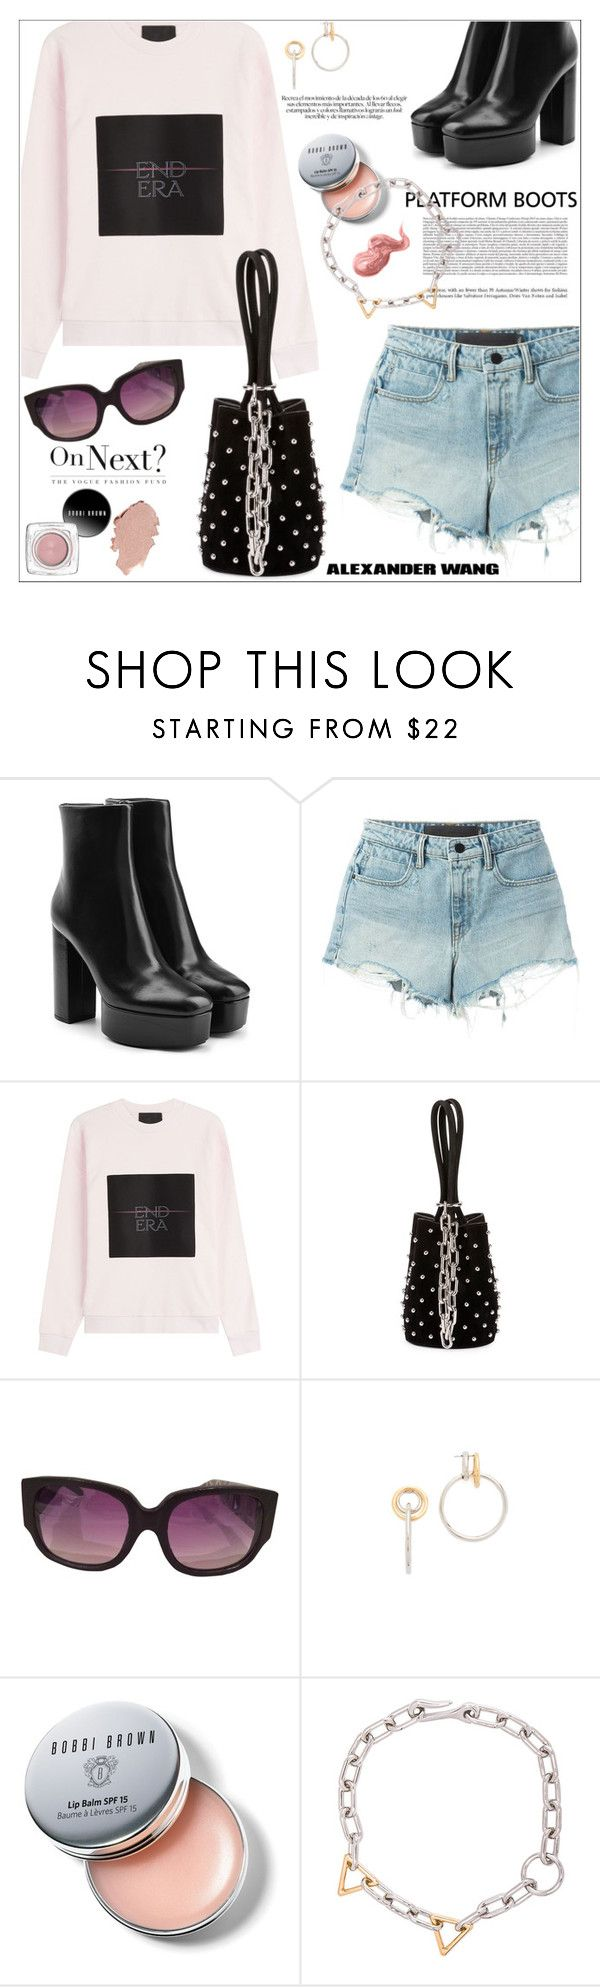 """Kickin' it: platform boots"" by jan31 ❤ liked on Polyvore featuring Alexander Wang, Bobbi Brown Cosmetics, PlatformBoots, sweatshirts, denimshorts, distresseddenim and bucketbags"